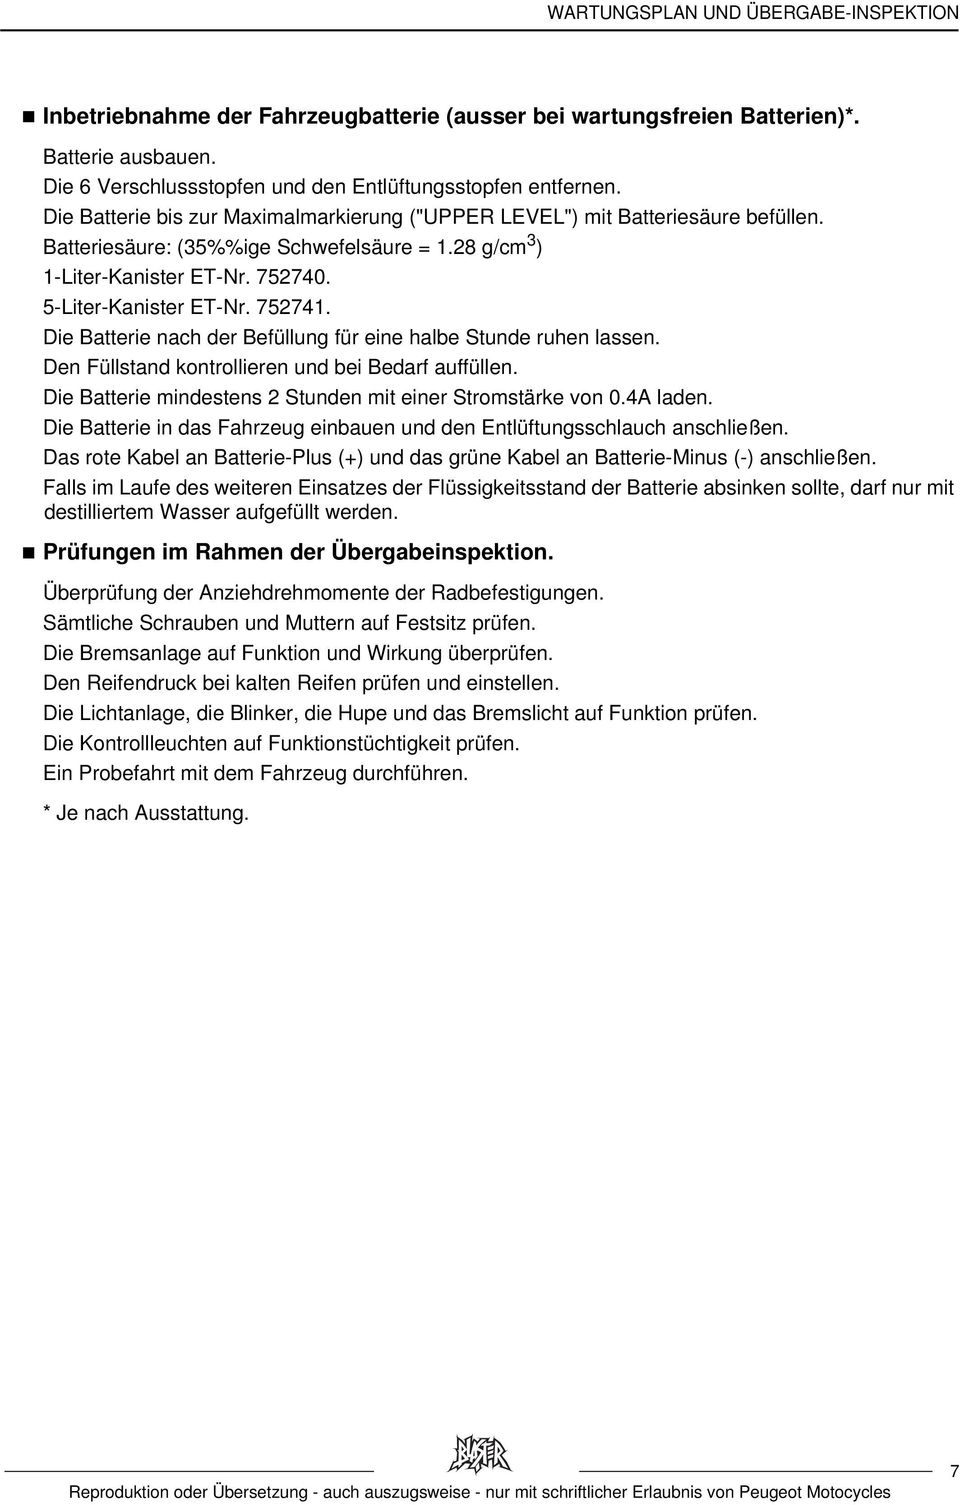 Schön Transportplaner Lebenslauf Galerie - Entry Level Resume ...